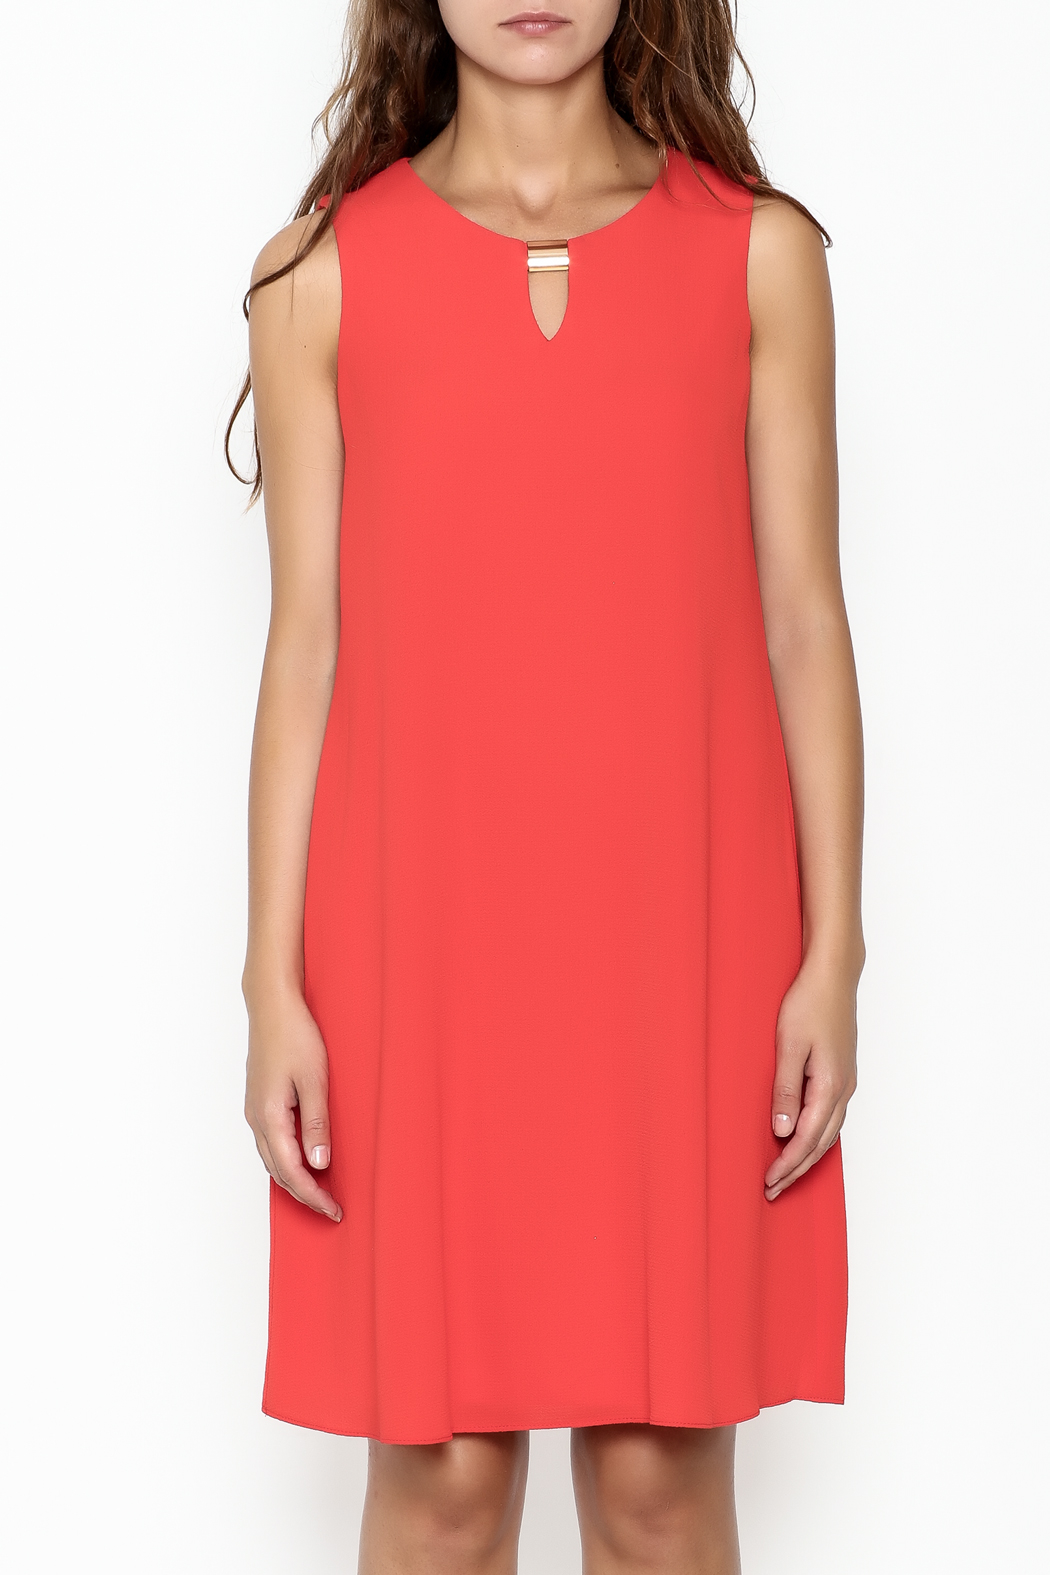 Frank Lyman Coral Shift Dress - Front Full Image